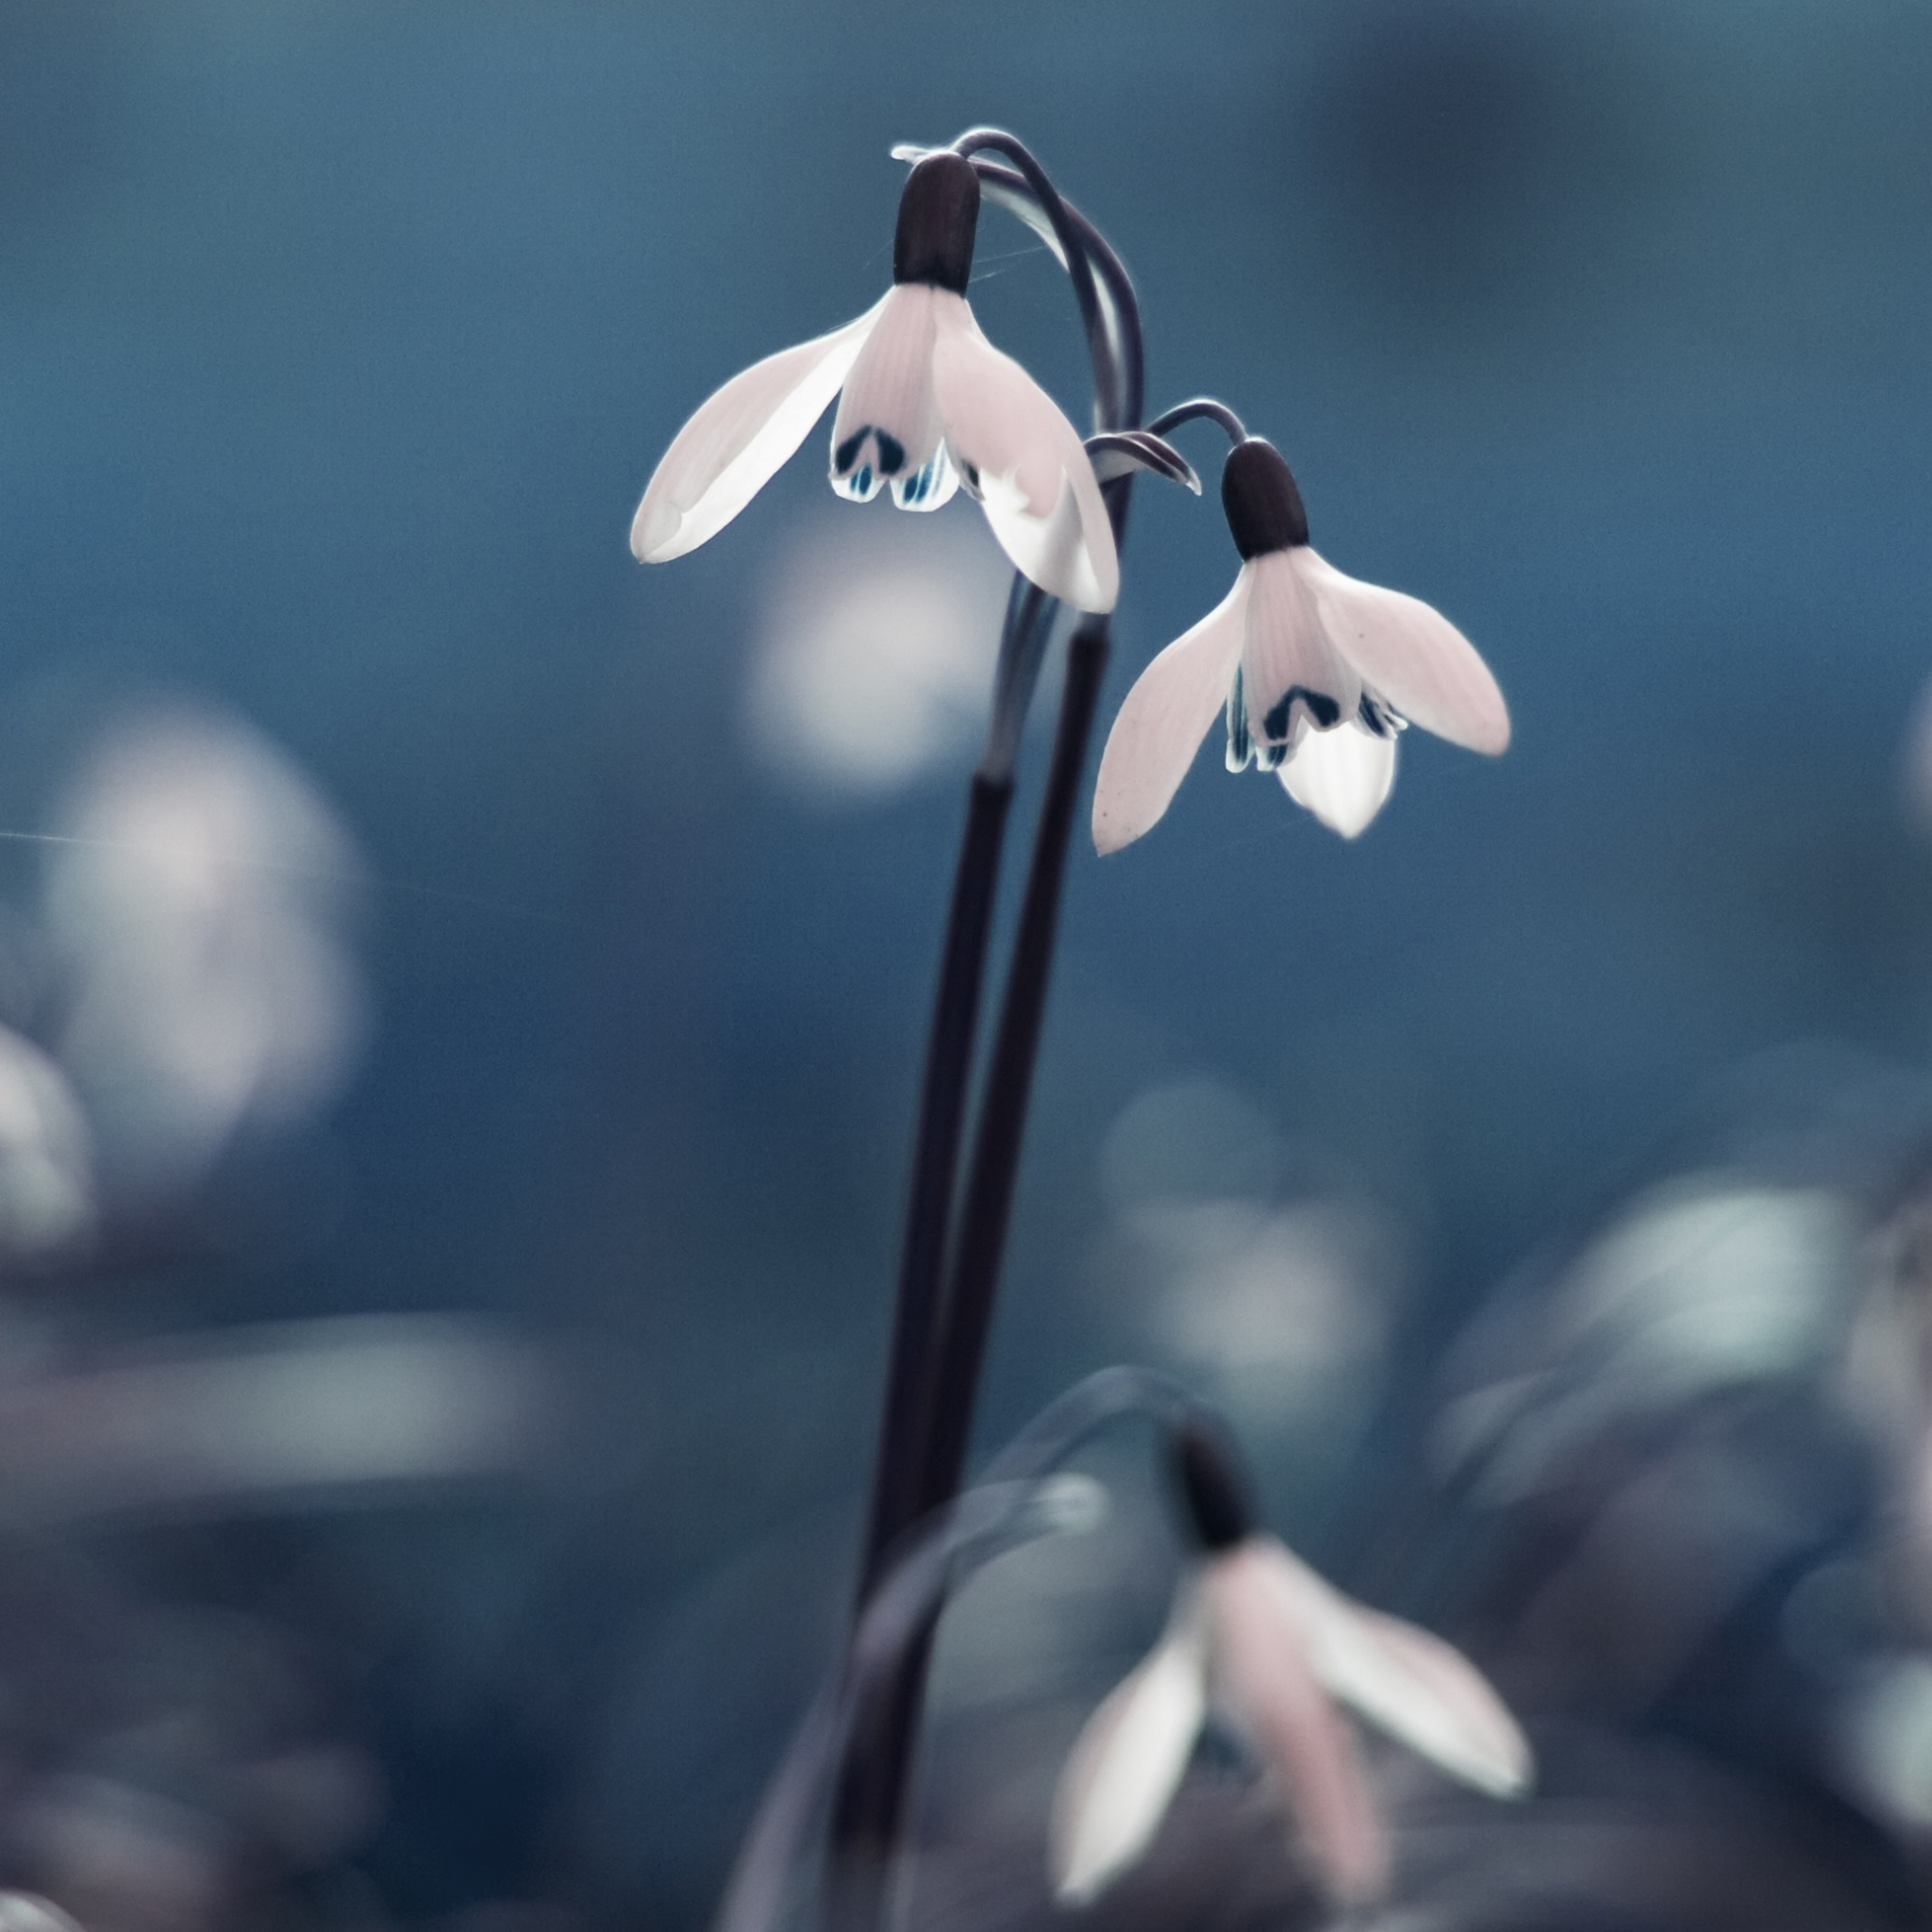 Opened Snowdrops 3Wallpapers ipad Retina Opened Snowdrops   iPad Retina